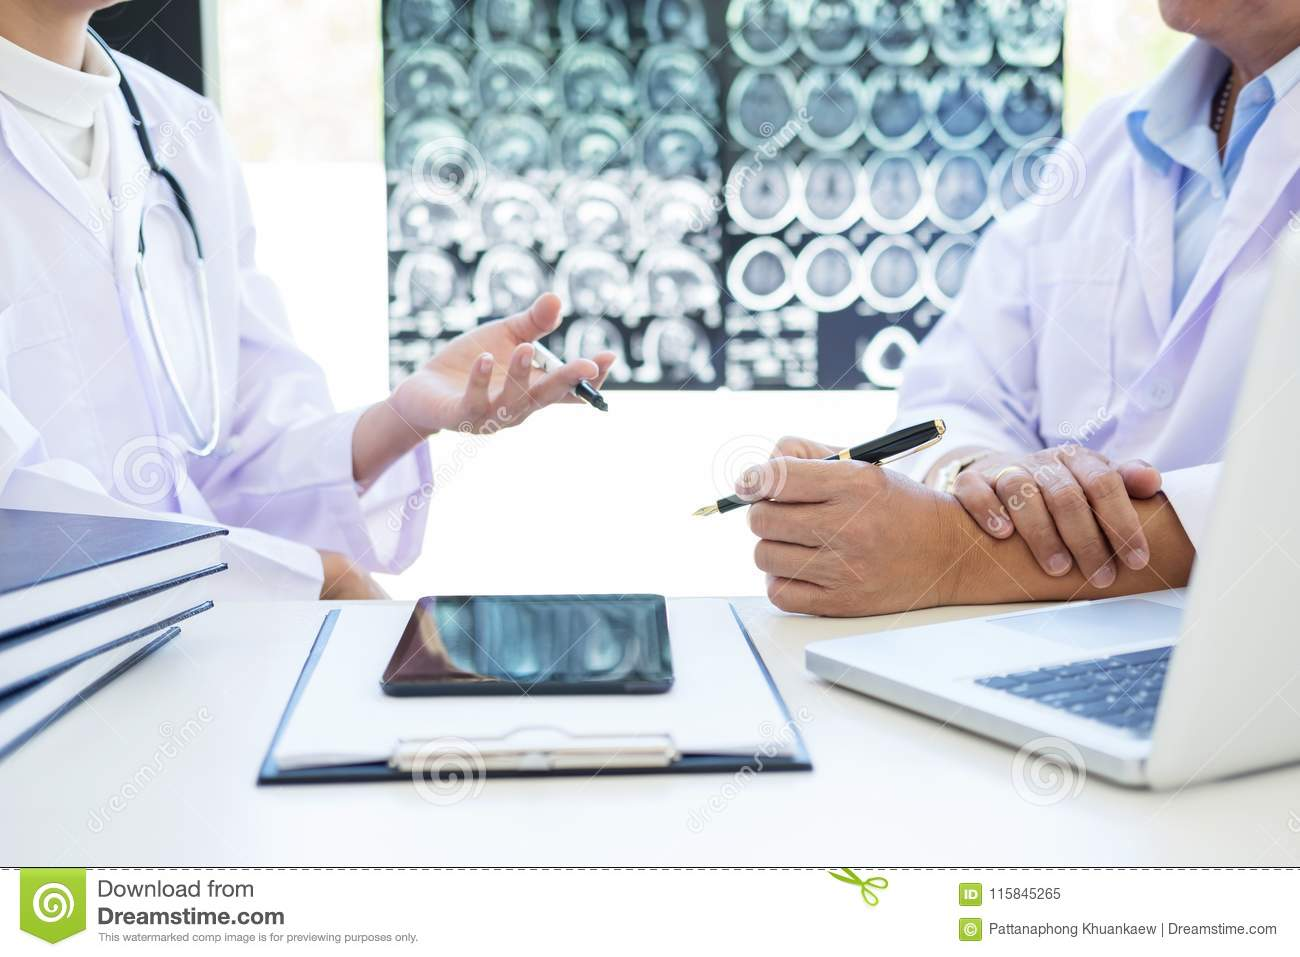 Professor Doctor discussion a method with patient treatment, res